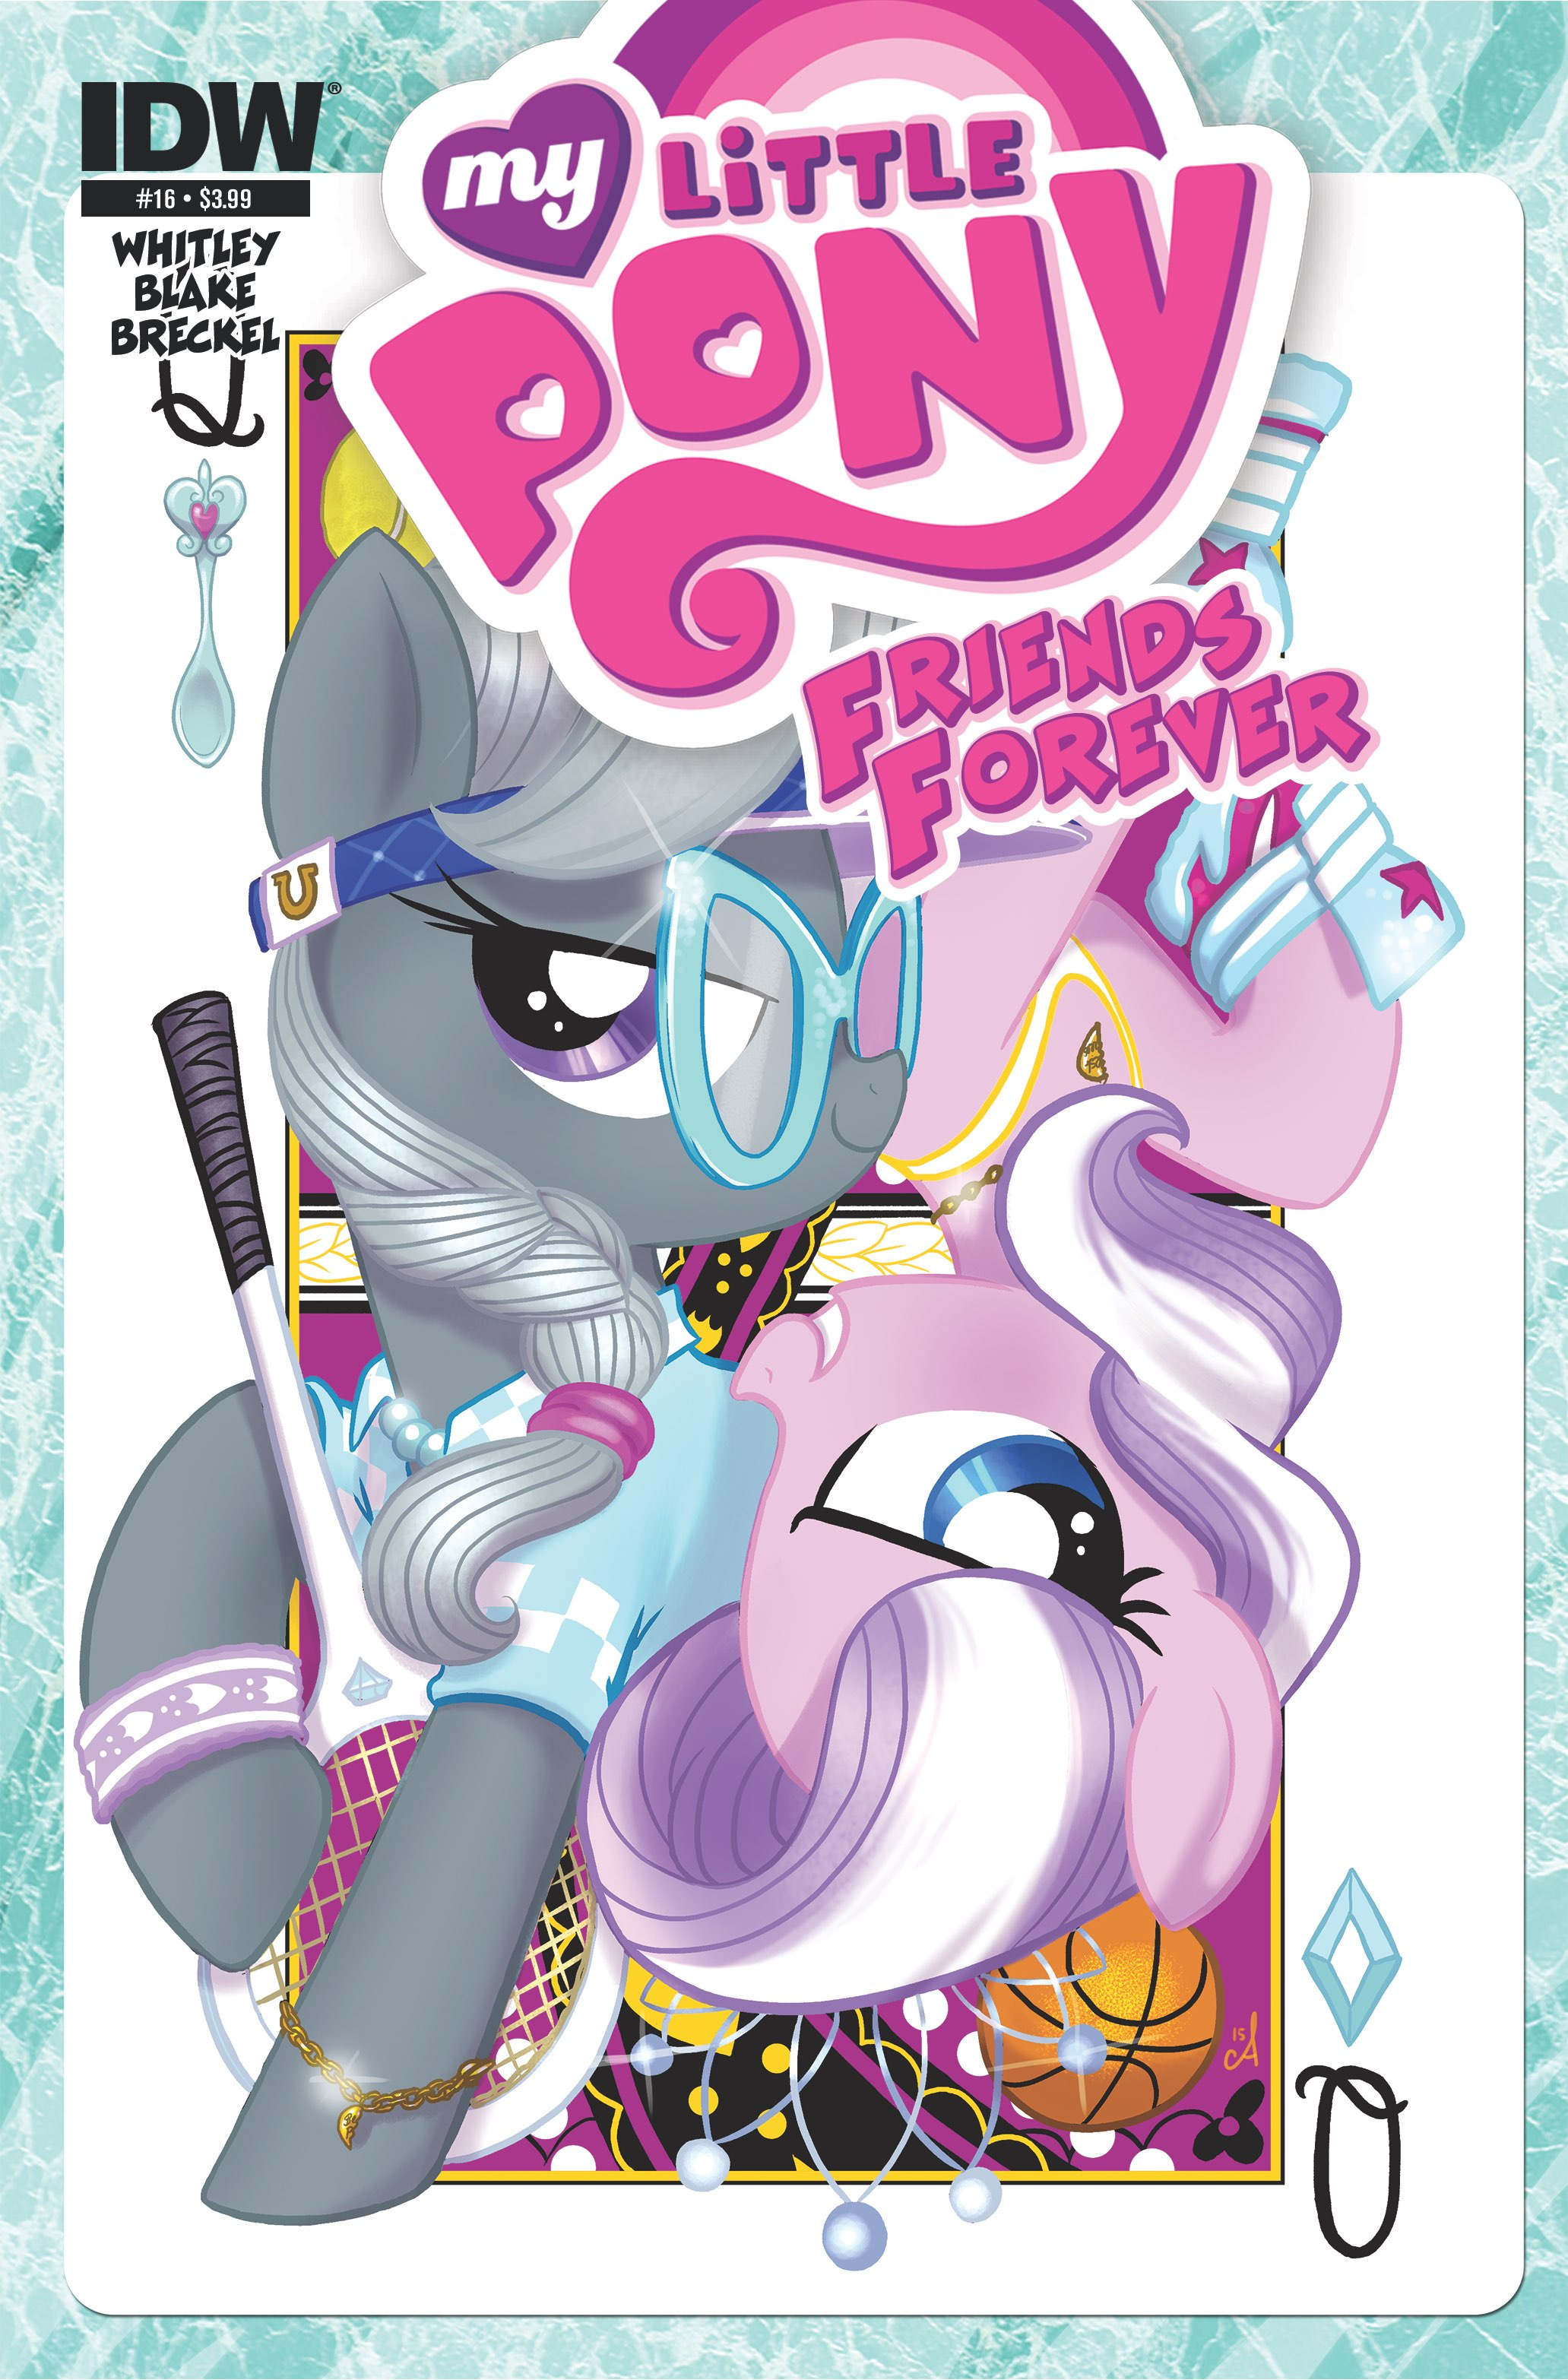 My Little Pony: Friends Forever #16 Review